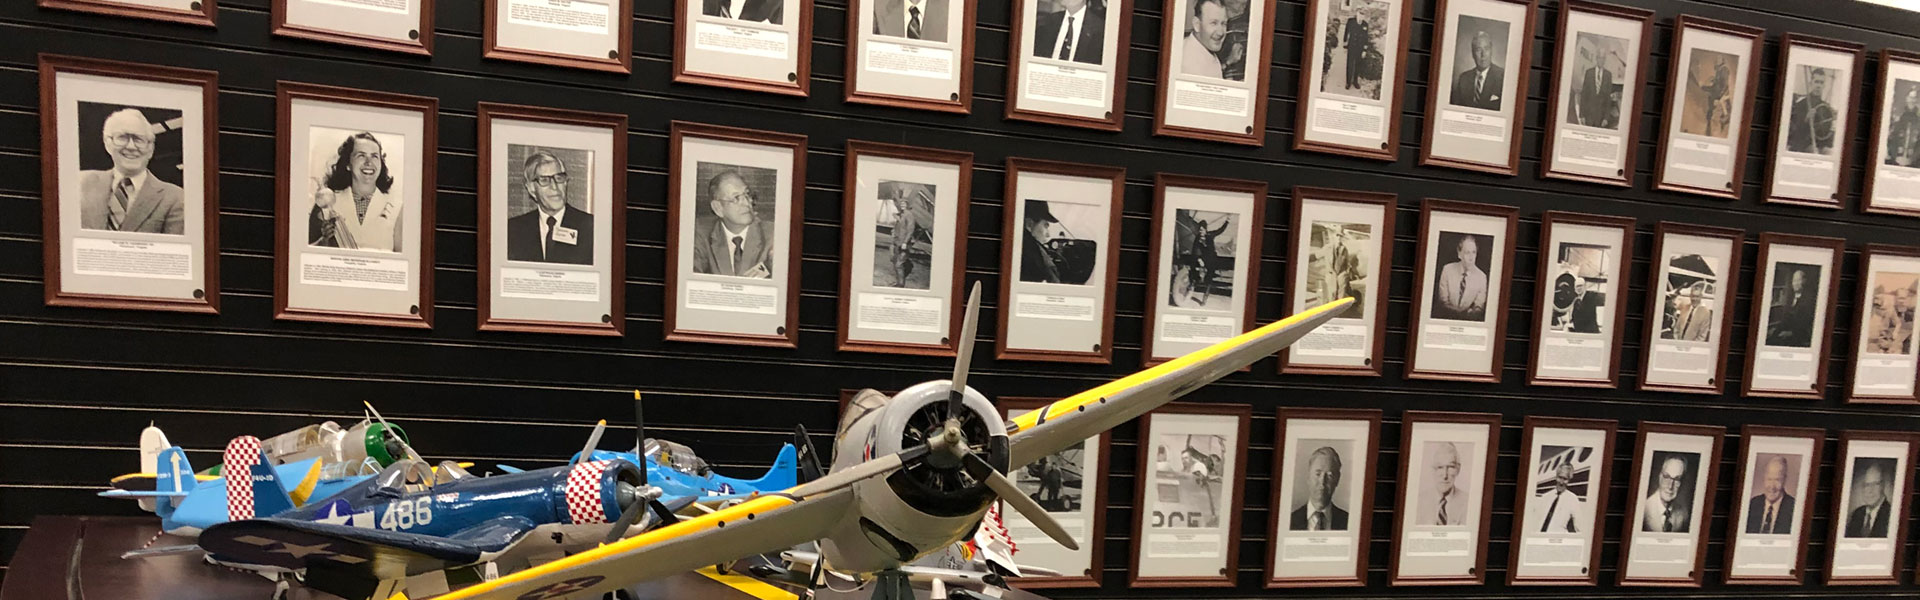 Virginia Aviation Hall of Fame at the Virginia Aviation Museum